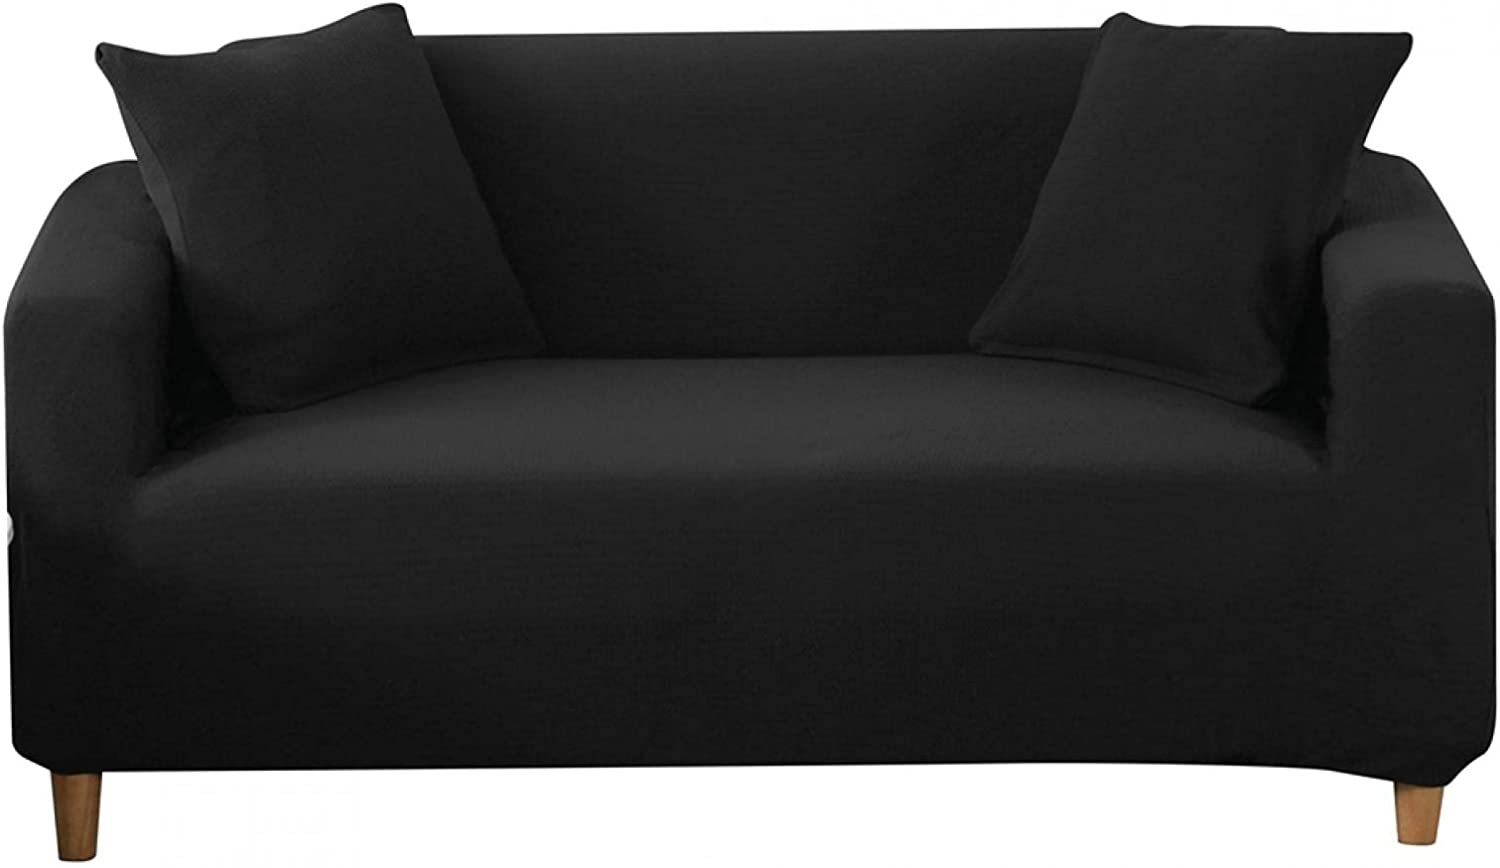 Emoshayoga Thickened Knitted Sofa for Cover 5 popular Cushion H Store